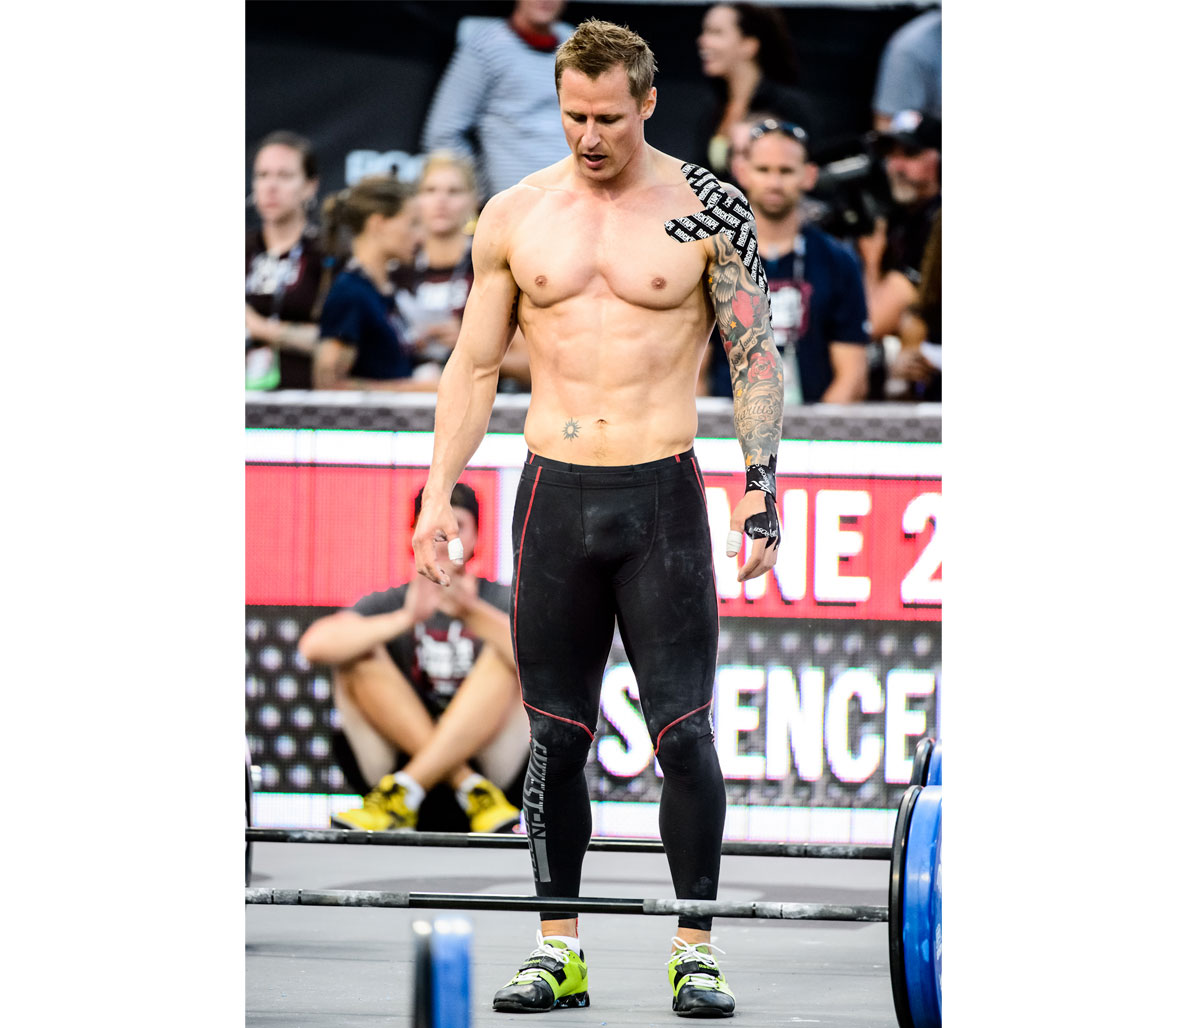 Best 2014 Crossfit For 32 Things In POTkwiulXZ